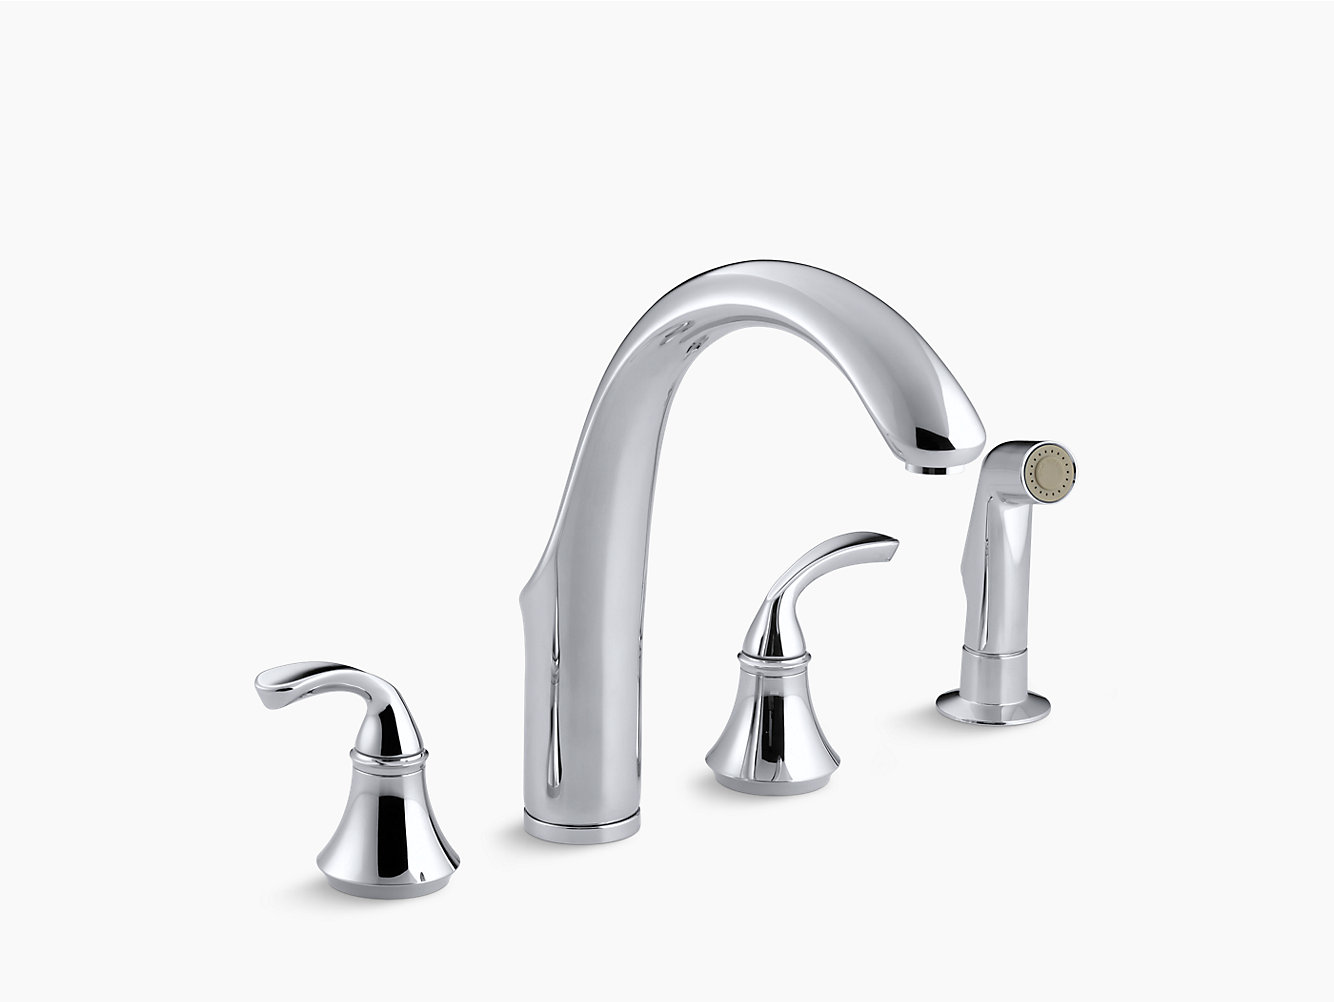 Kohler Forte Roman Tub Faucet Repair Kitchen Faucet With Sprayer Creating Bathroom Faucet Cost